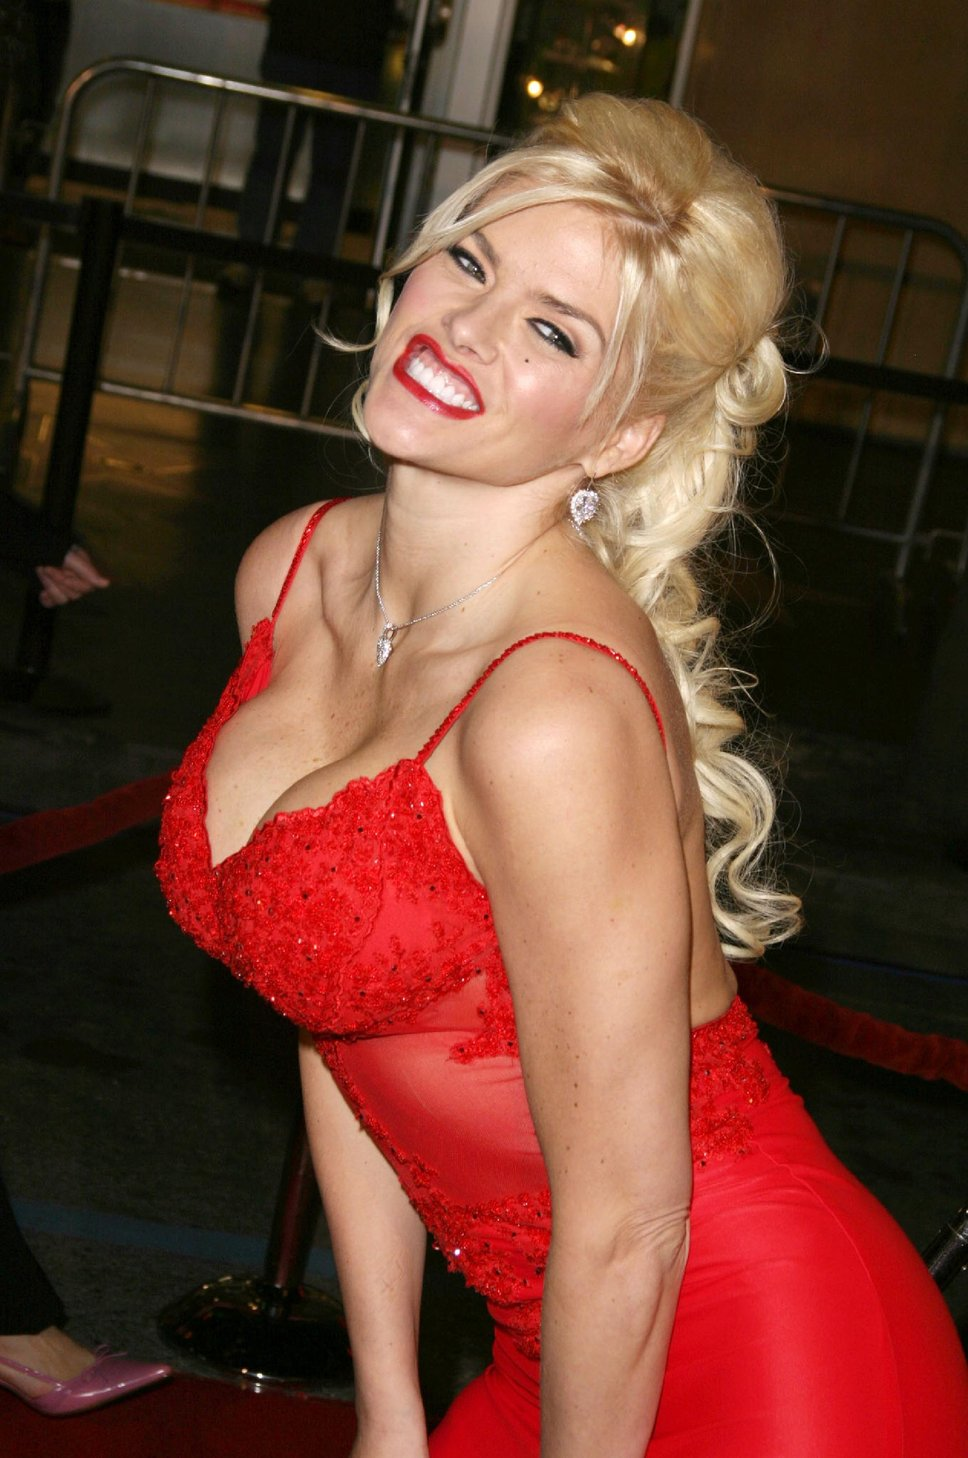 Scene anna crime nicole smith